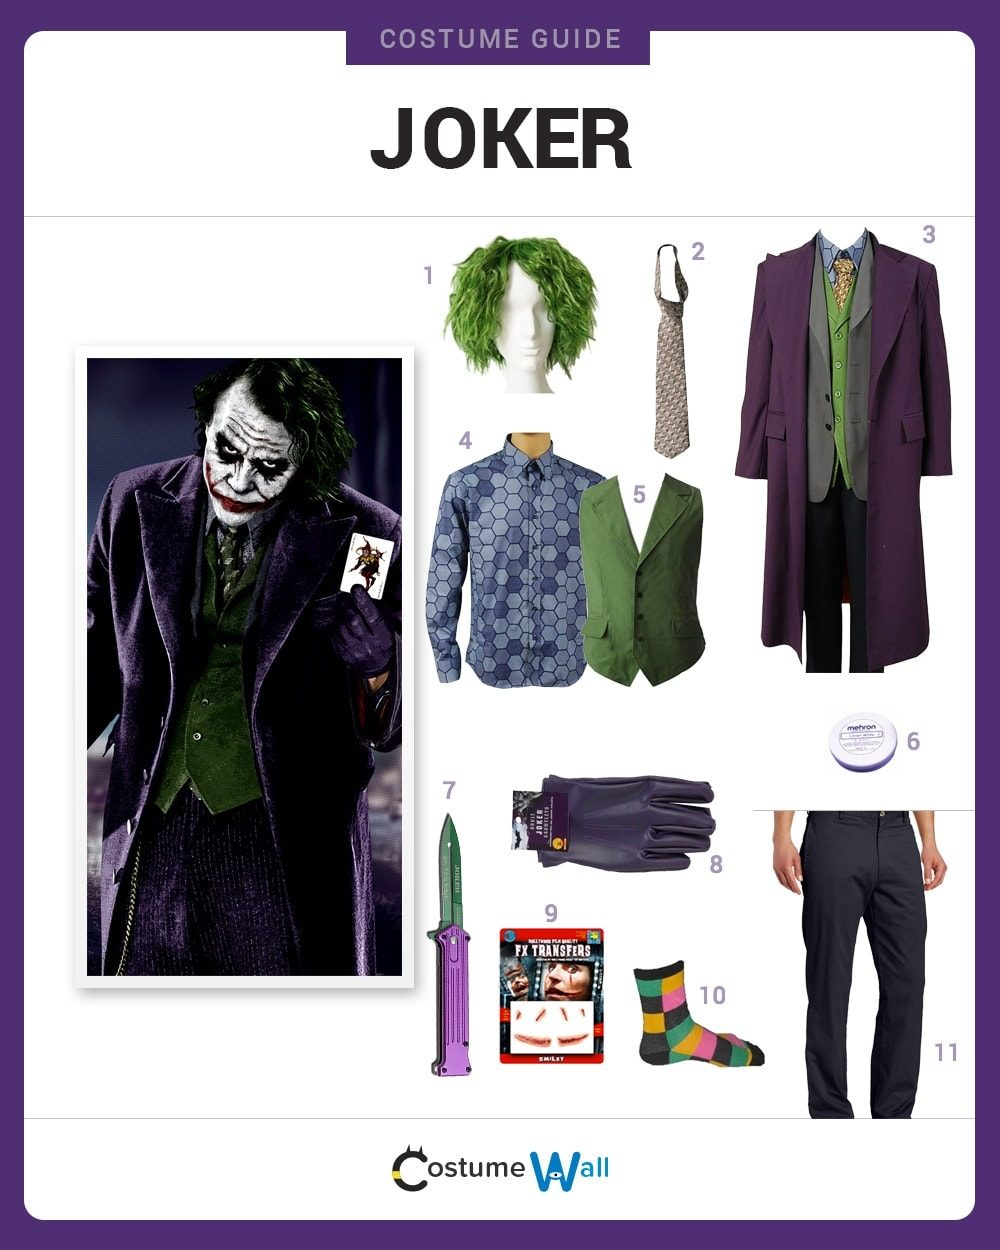 How To Dress Like The Joker